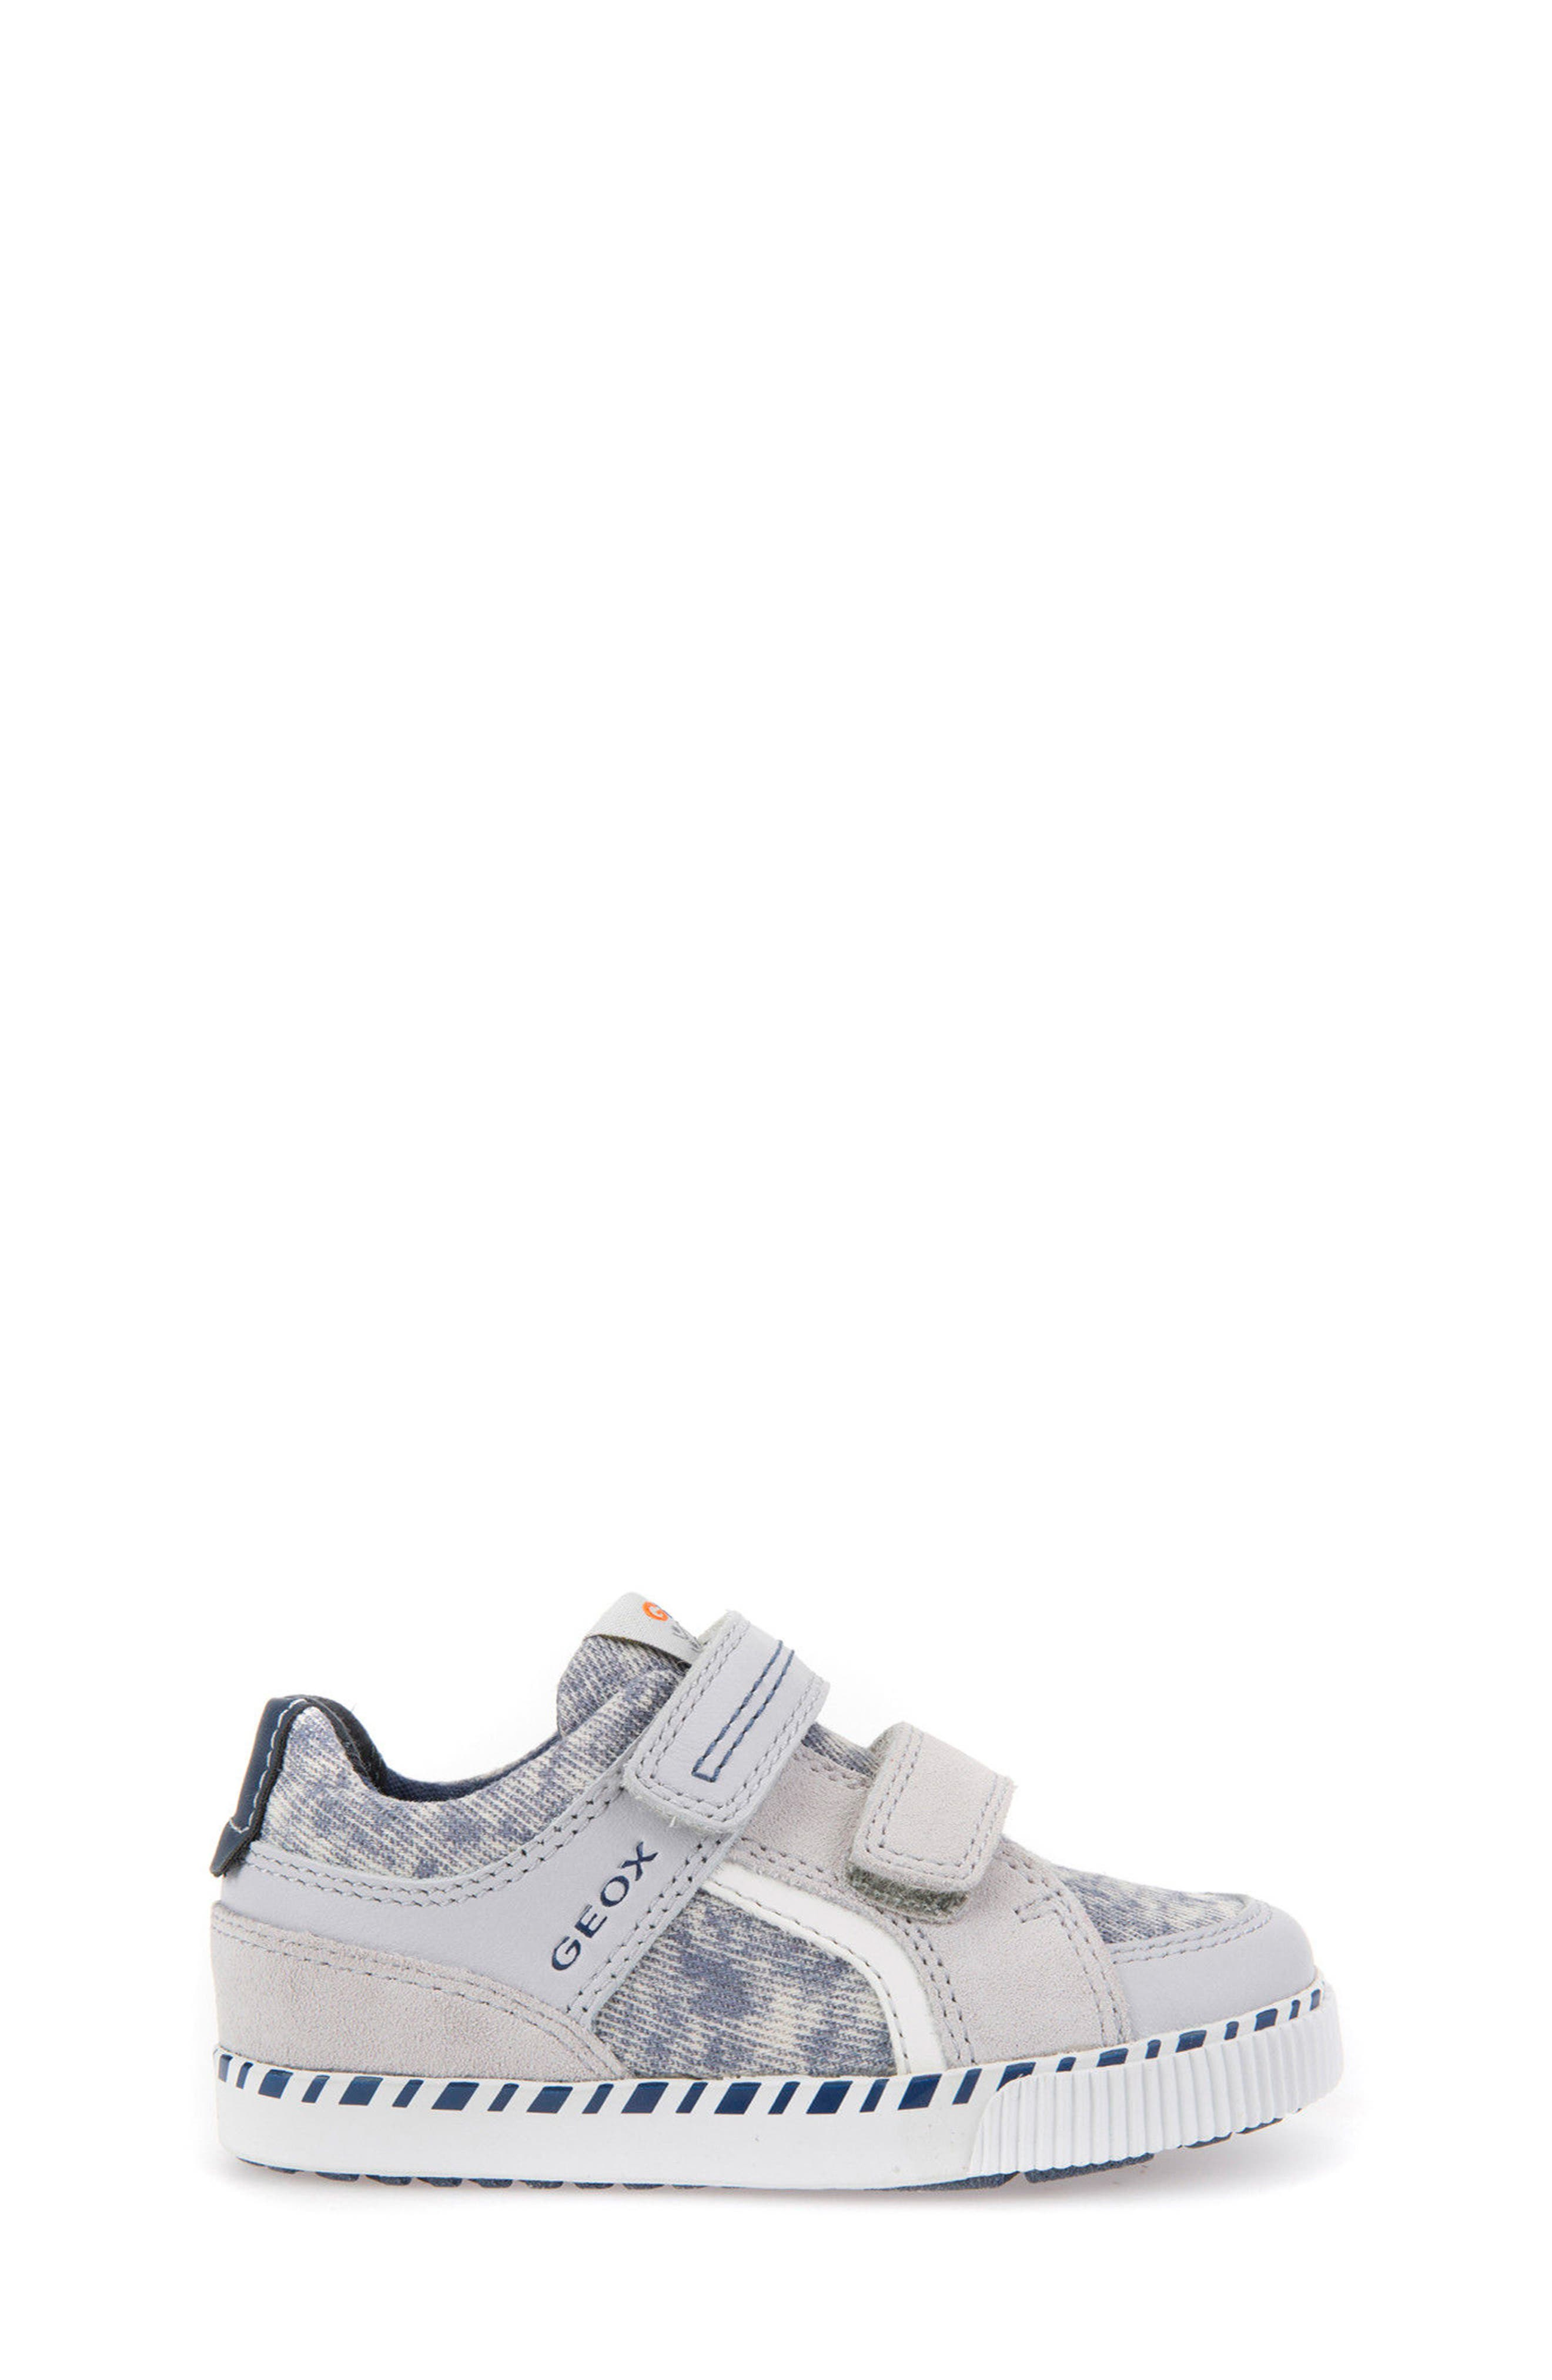 Kilwi Knit Sneaker,                             Alternate thumbnail 3, color,                             Light Grey/ White